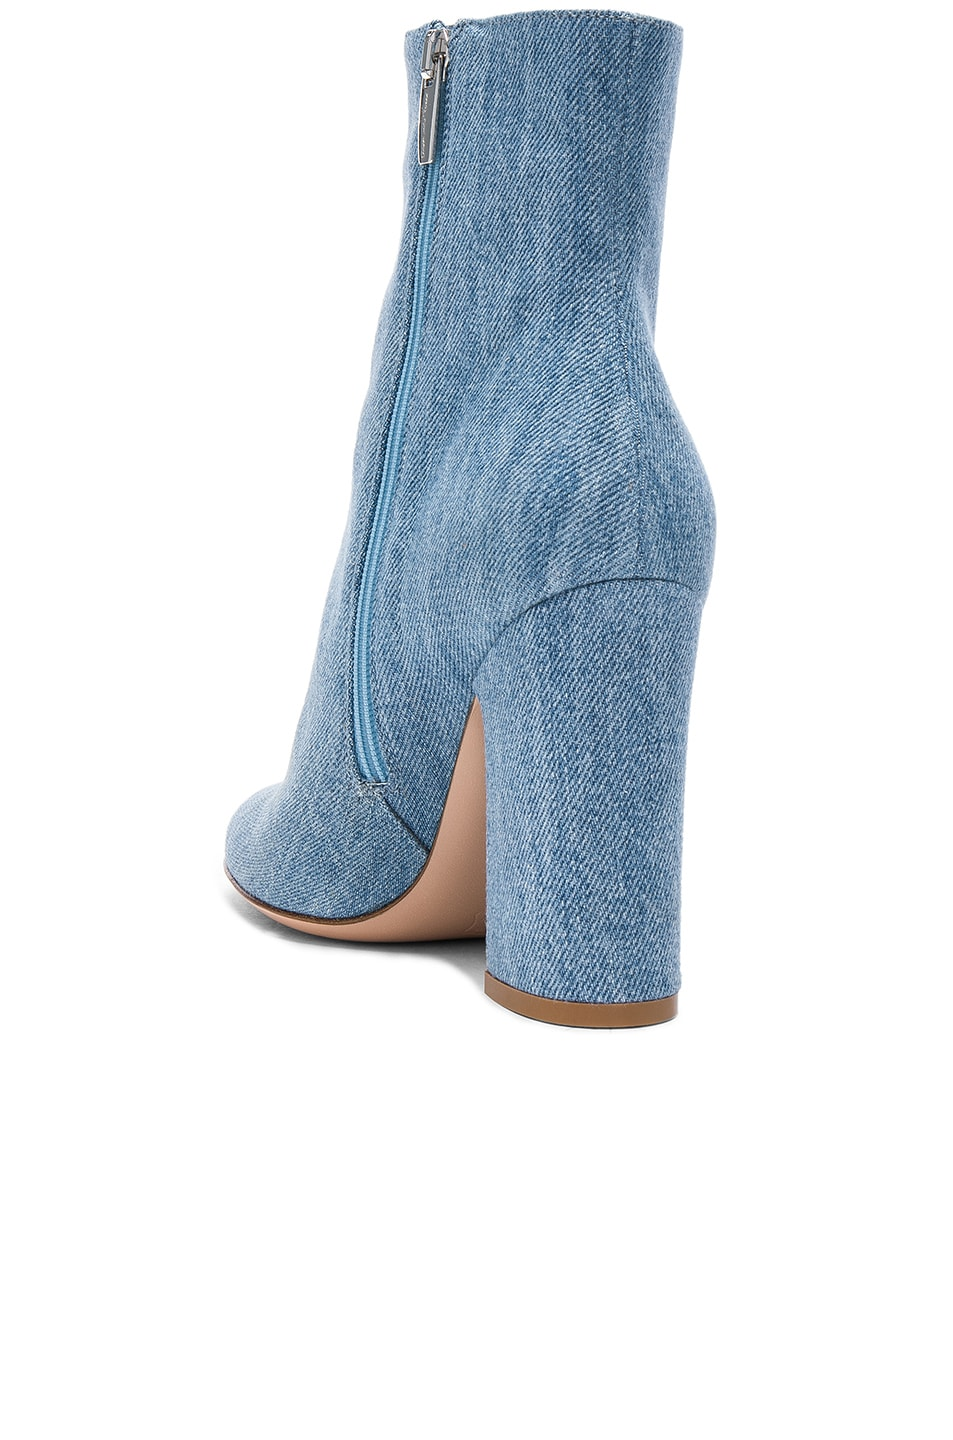 Image 3 of Gianvito Rossi Denim Shelly Booties in Stonewash